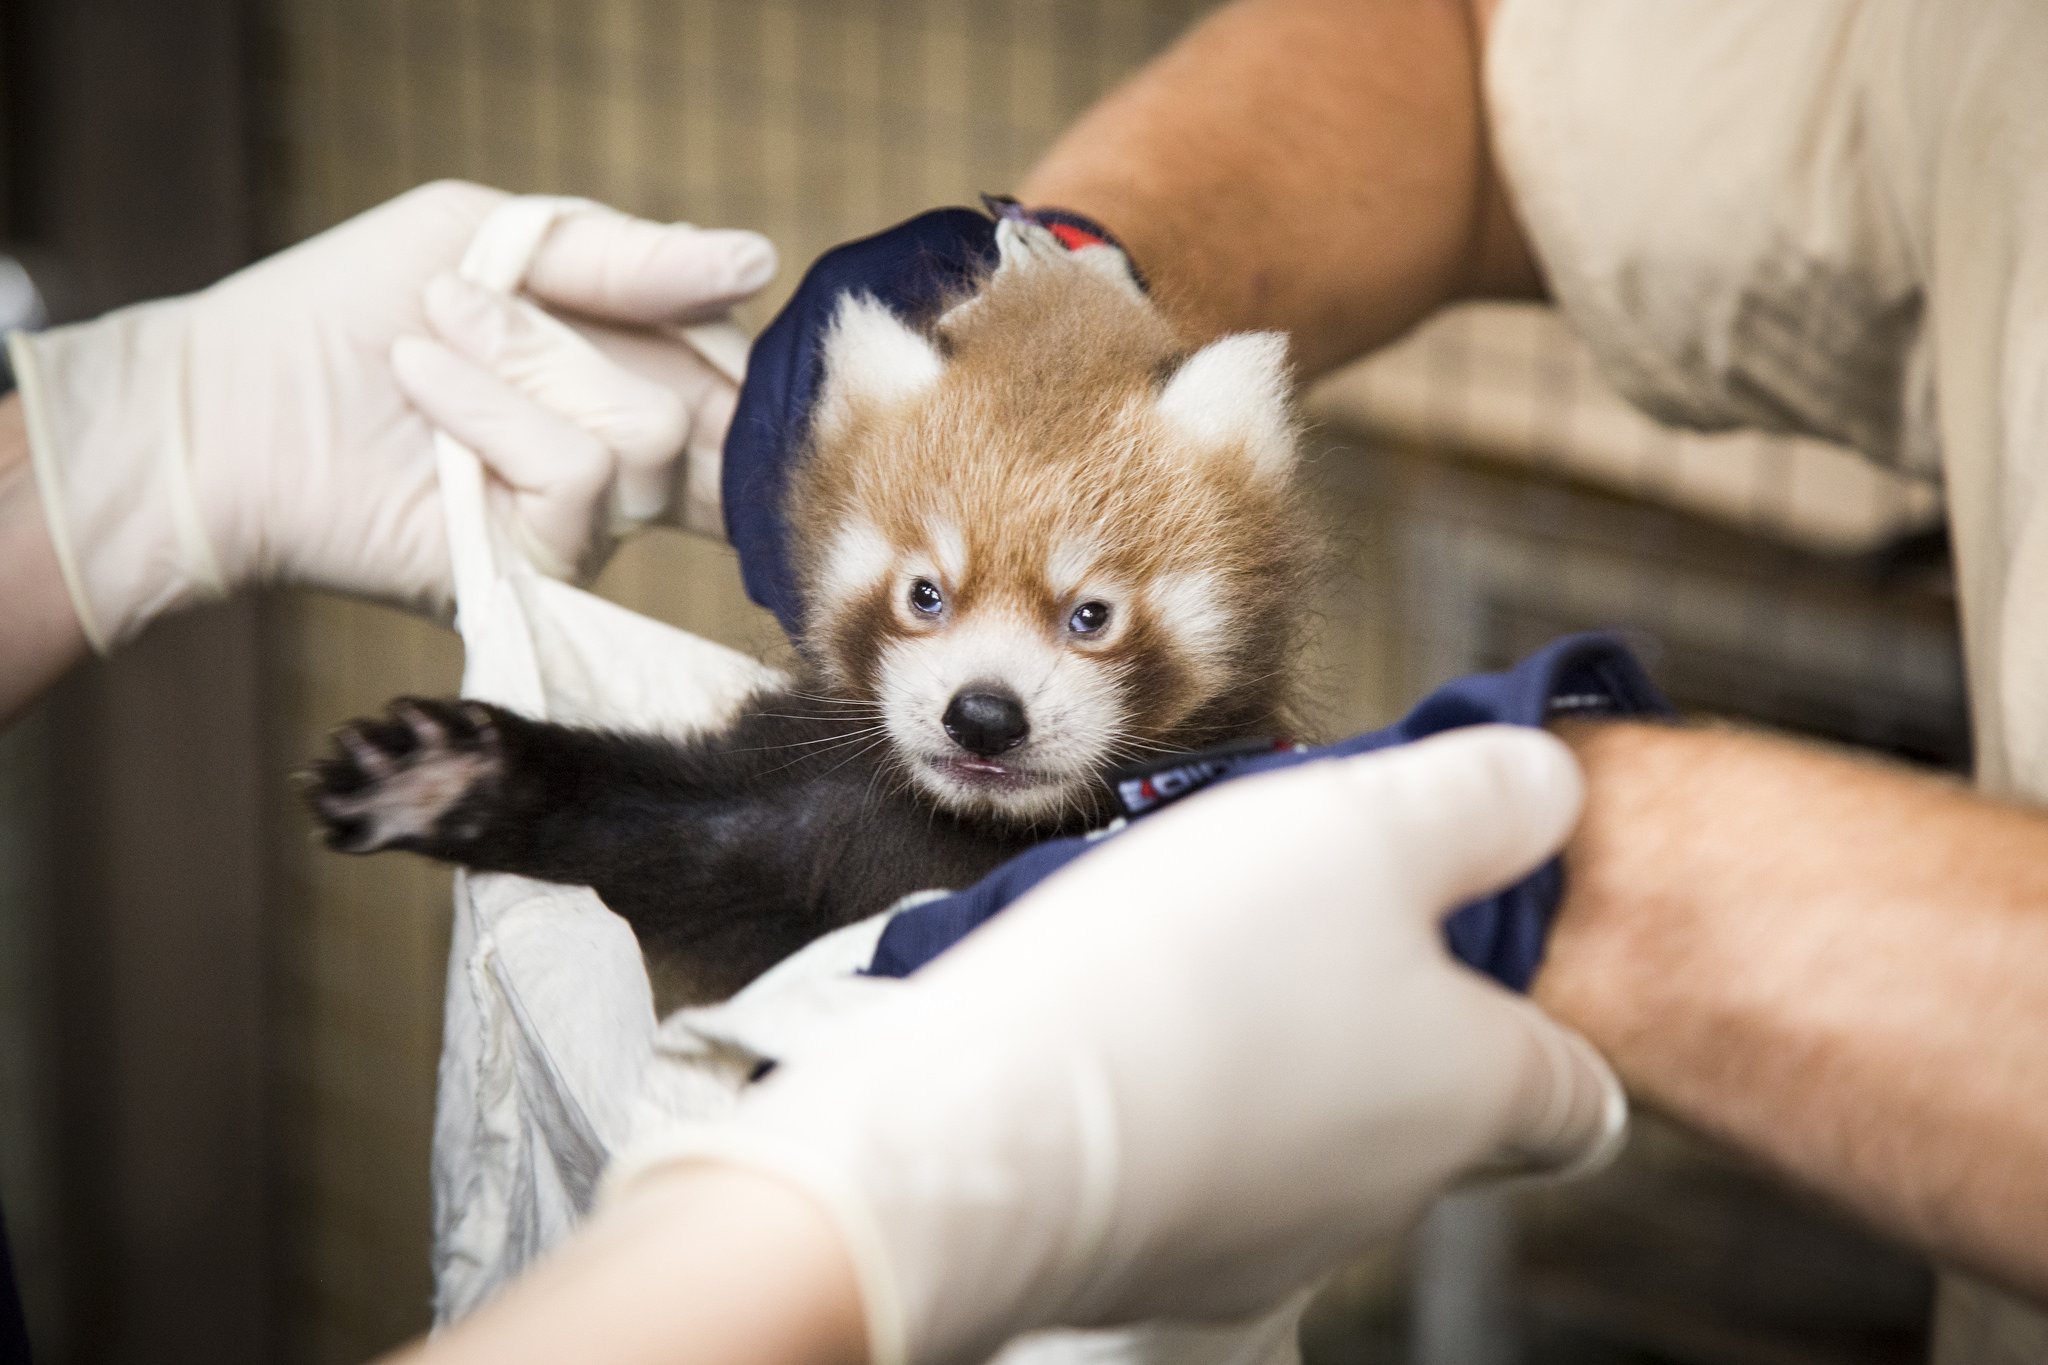 Image of: Ailurus Fulgens Endangered Red Panda Couple Got Their First Cub At The Helsinki Zoo Finland Today Endangered Red Panda Couple Got Their First Cub At The Helsinki Zoo